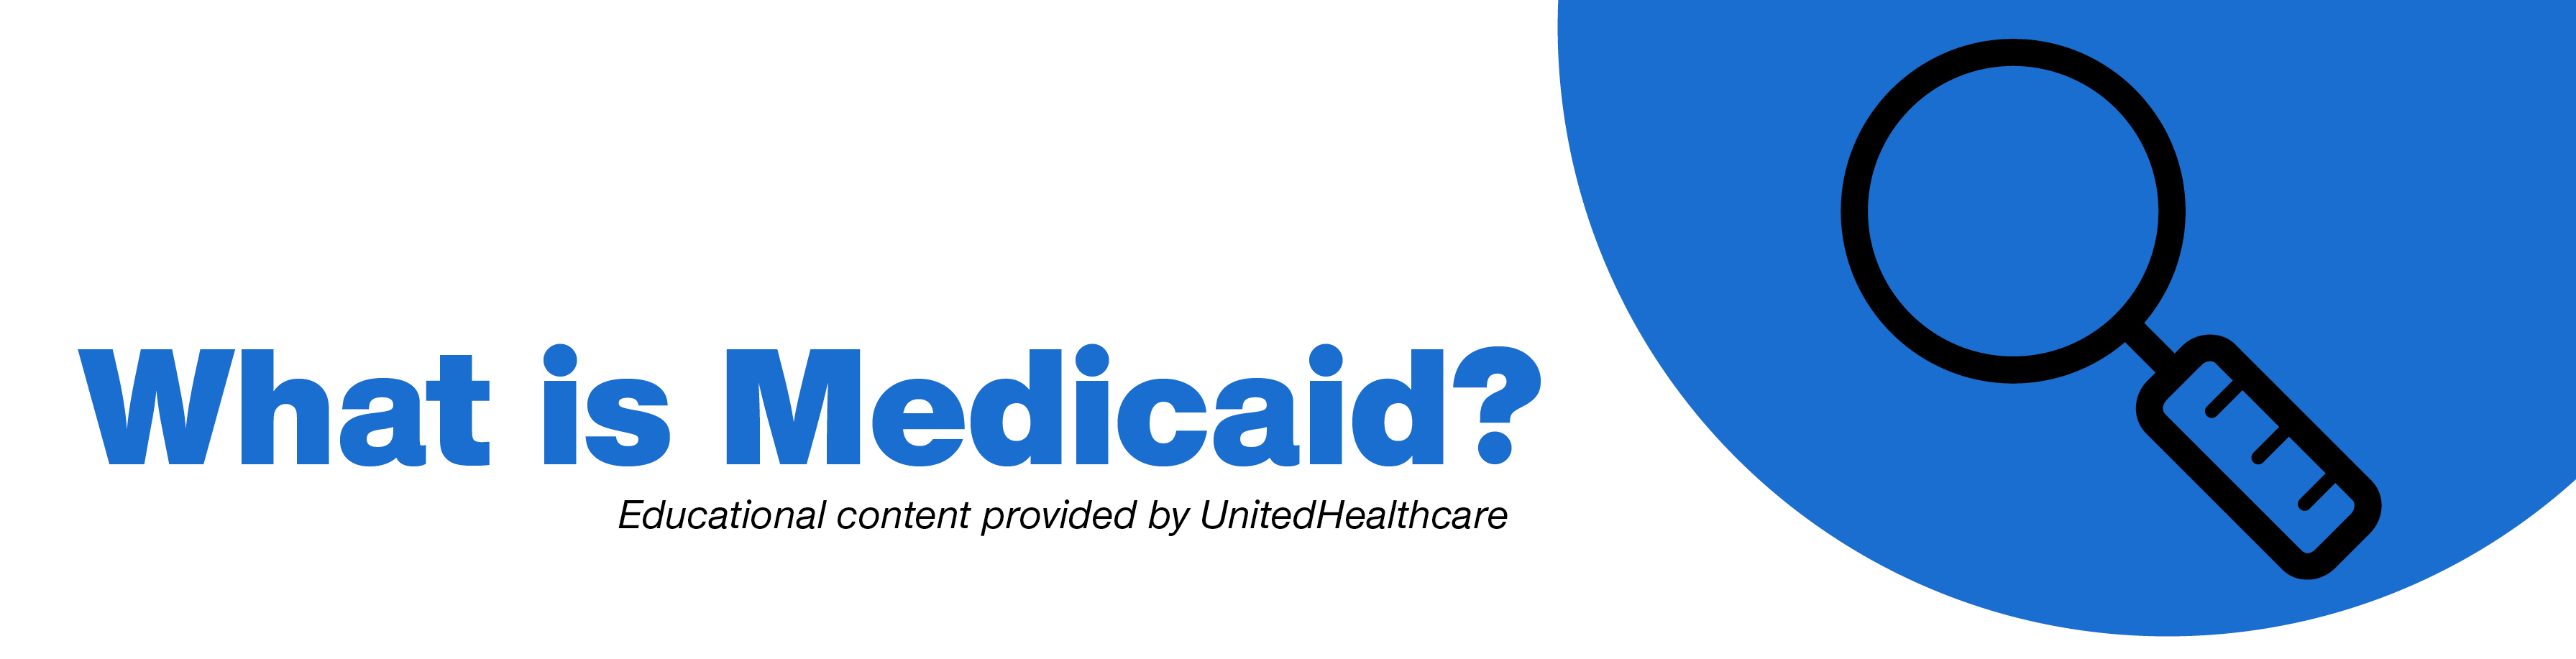 Medicaid Made Clear